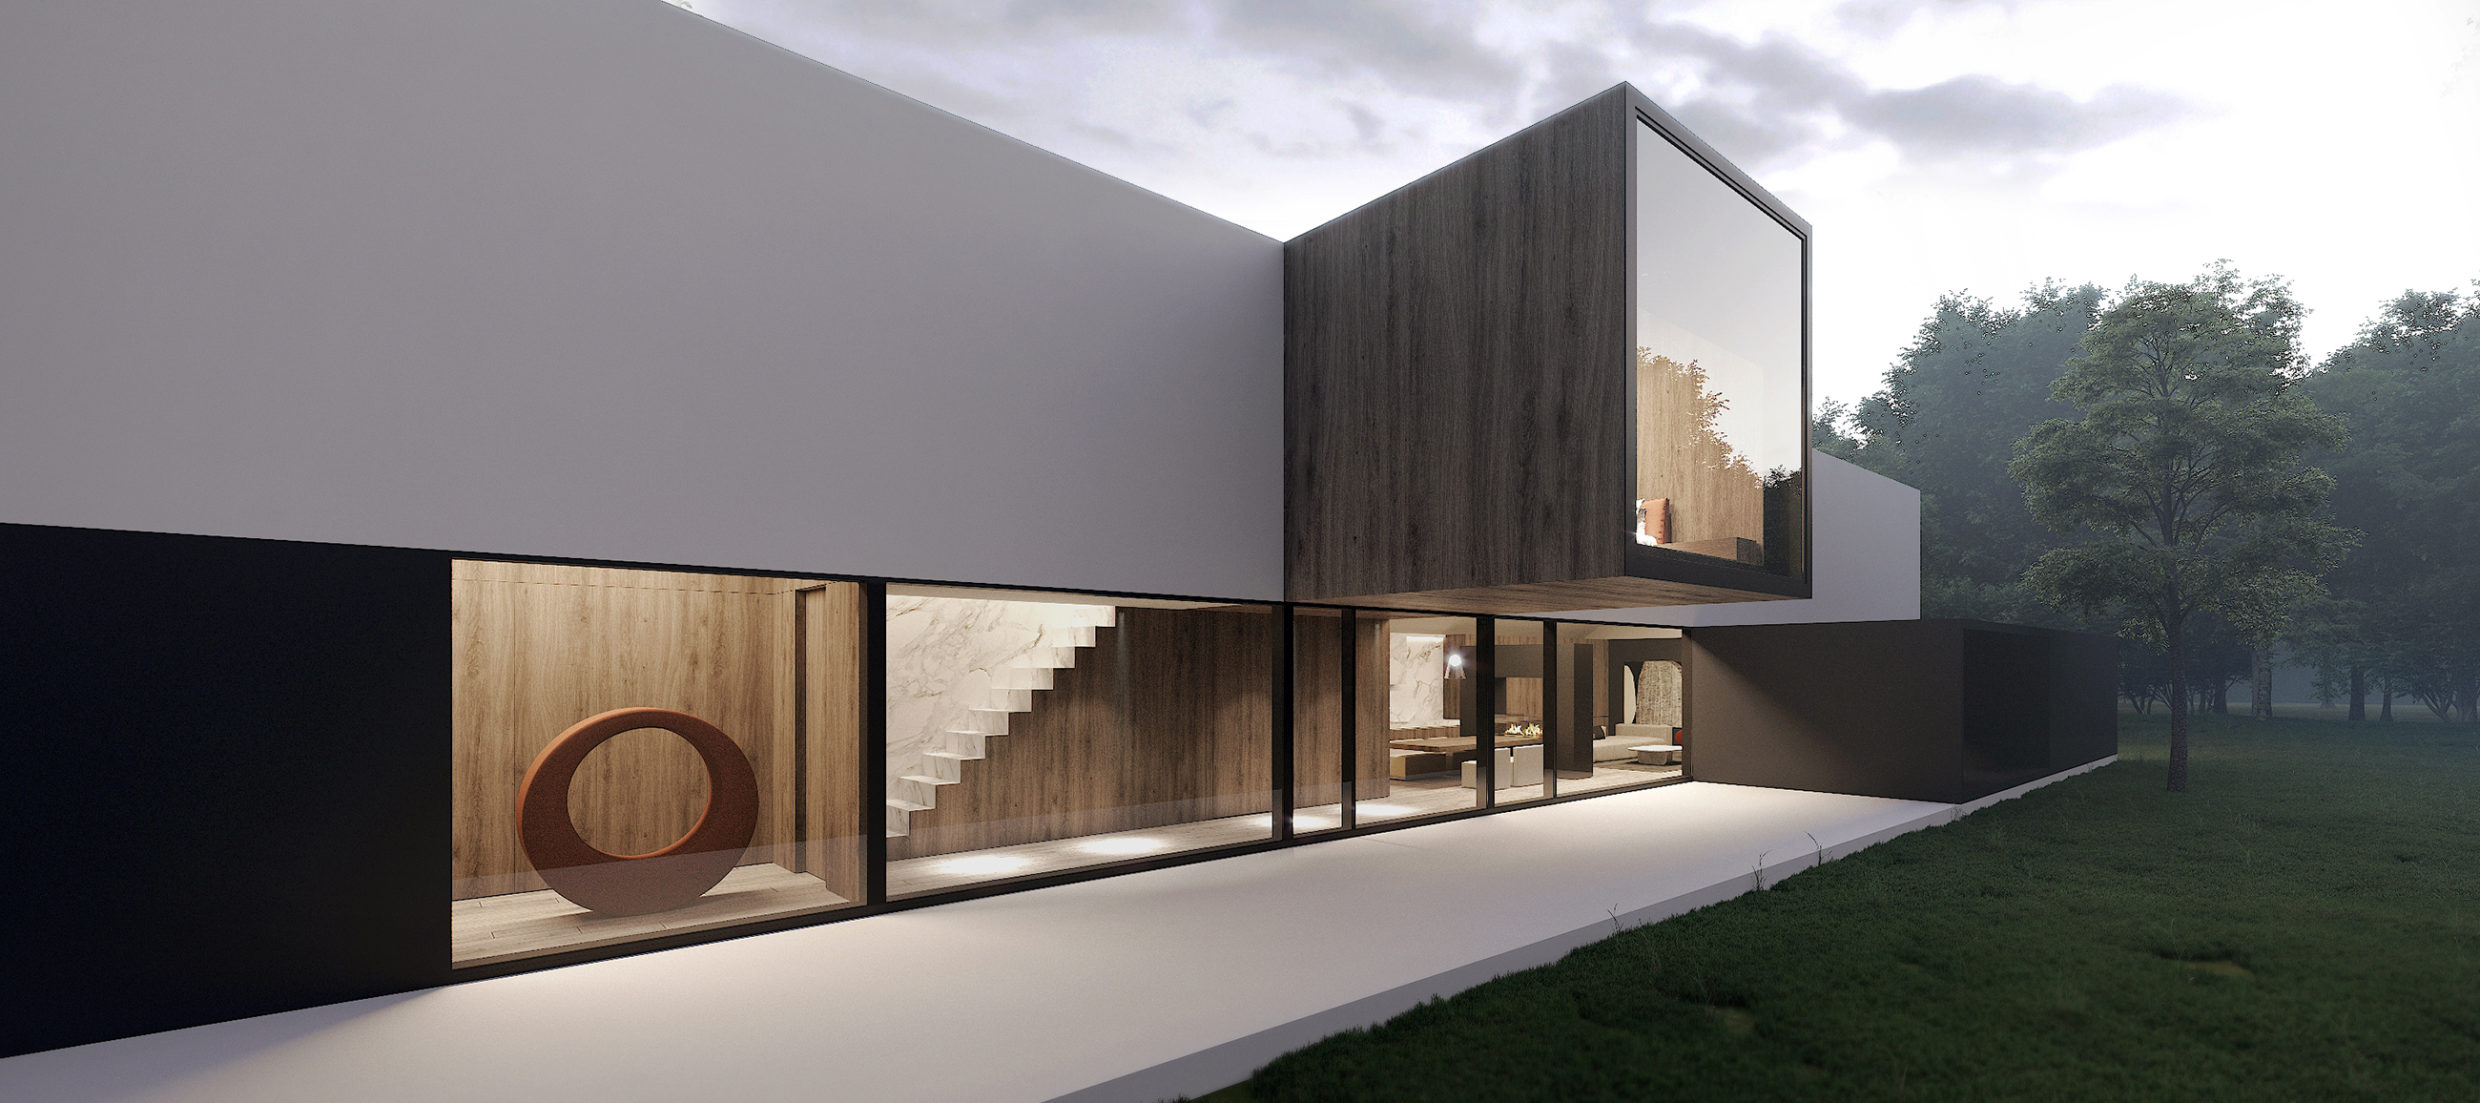 CONCEPT HOUSE lll 5